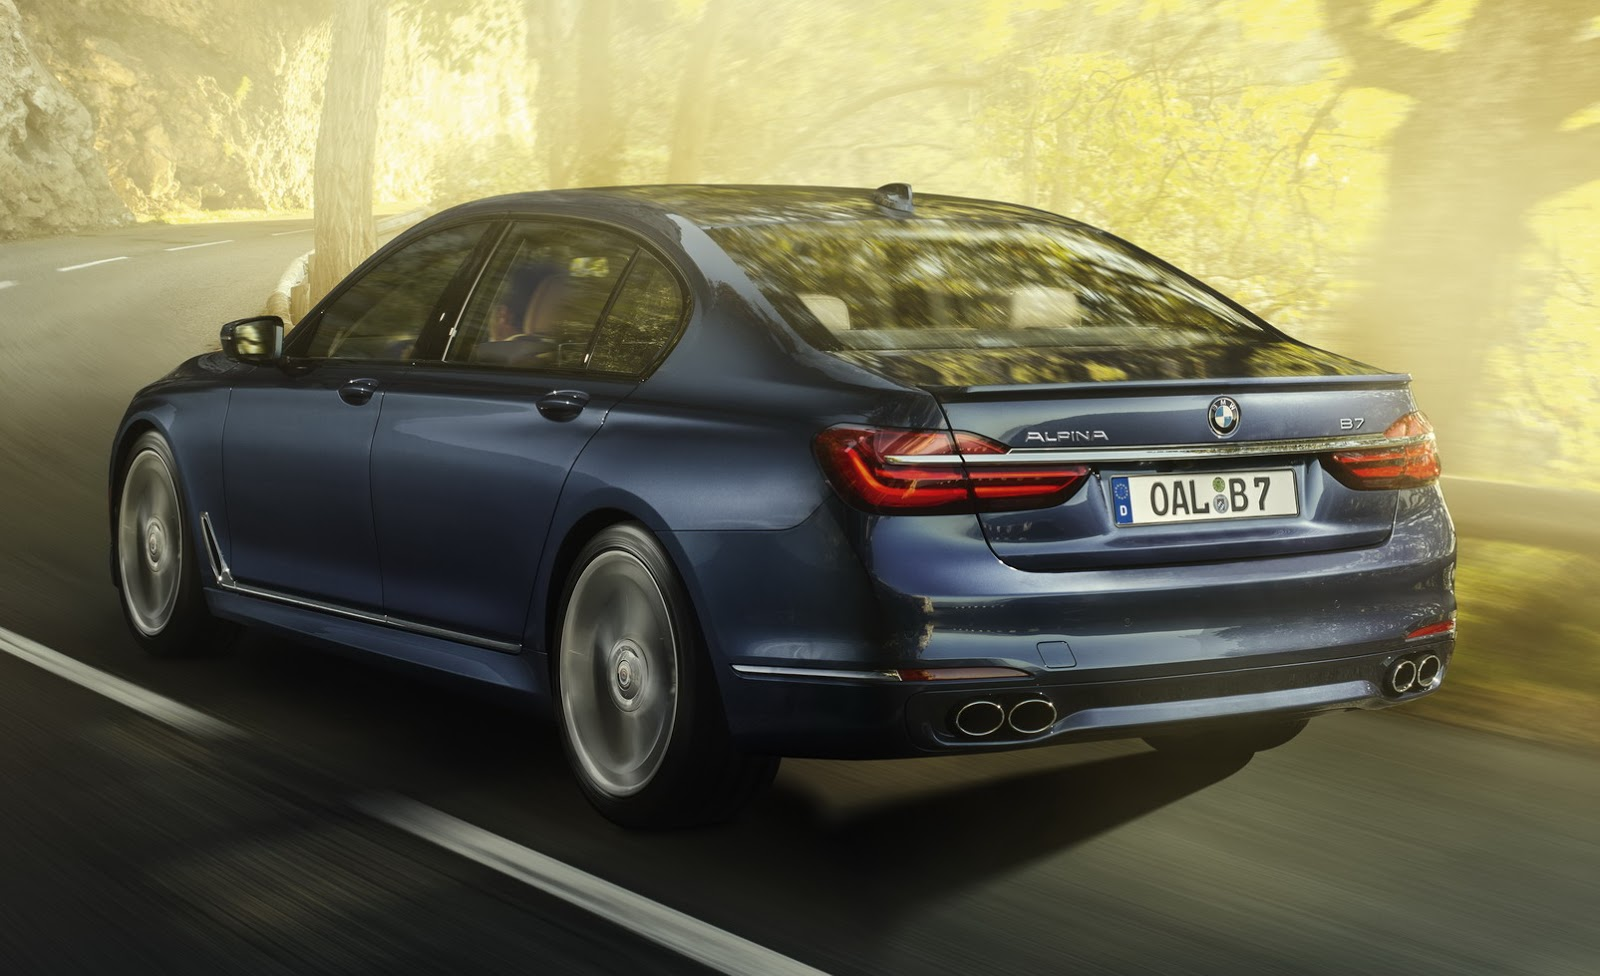 BMW Alpina B Revealed Photos Of - B7 bmw price